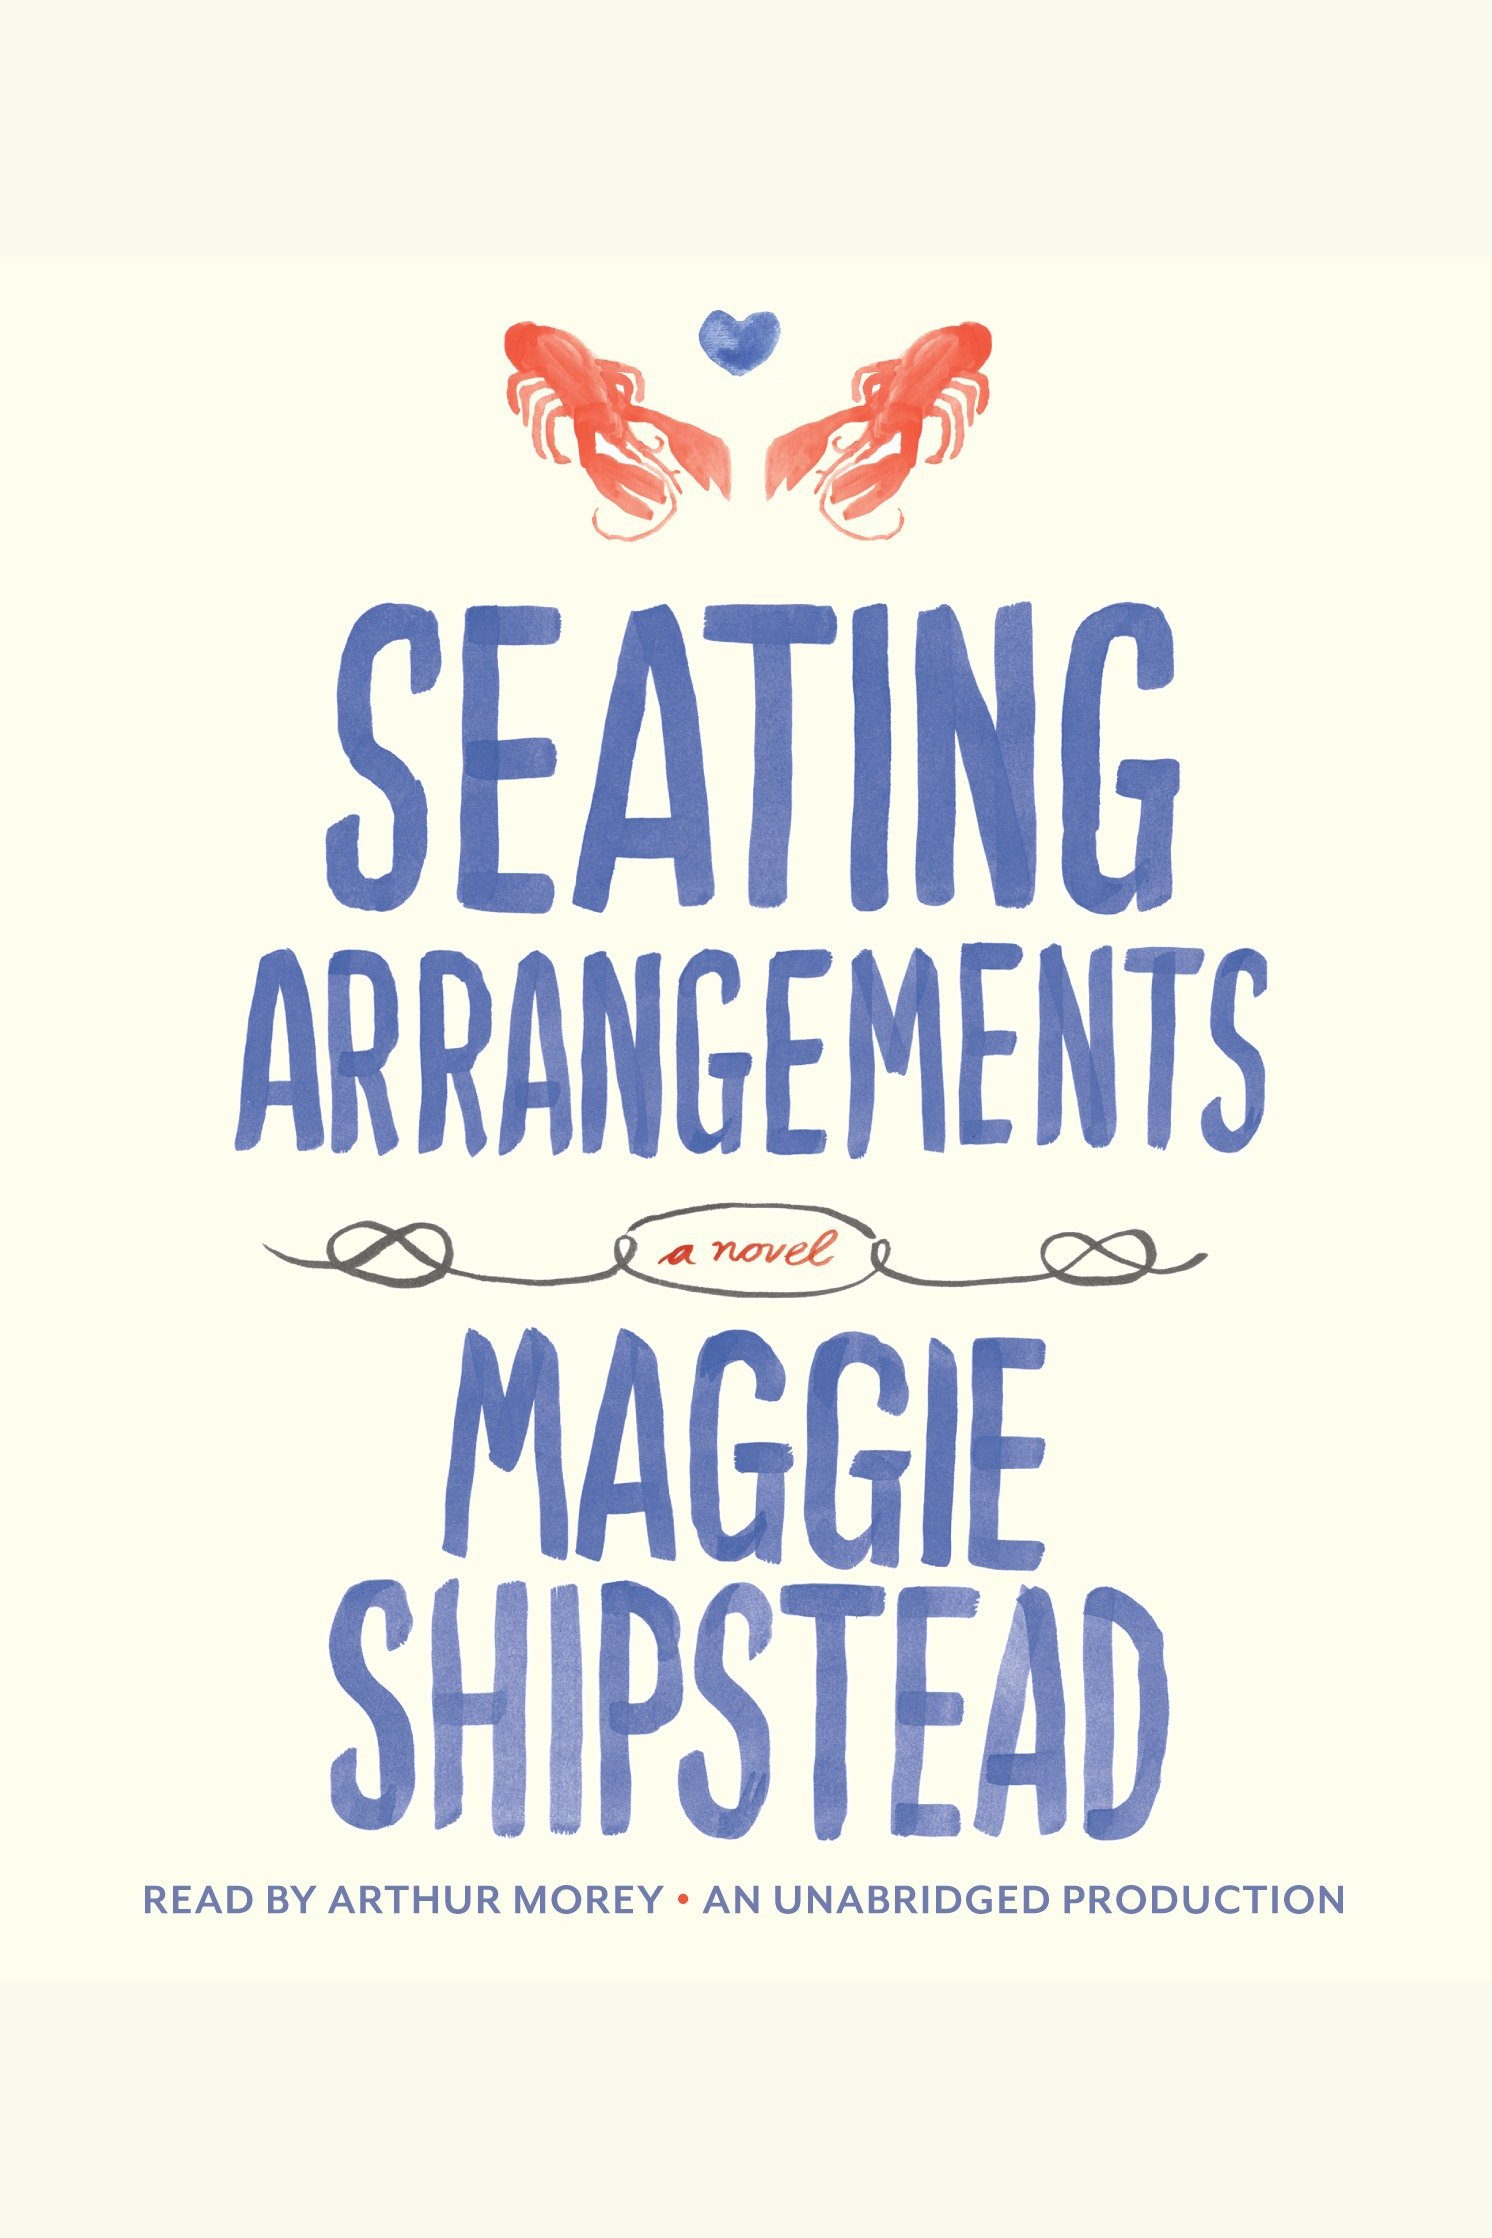 Seating arrangements cover image